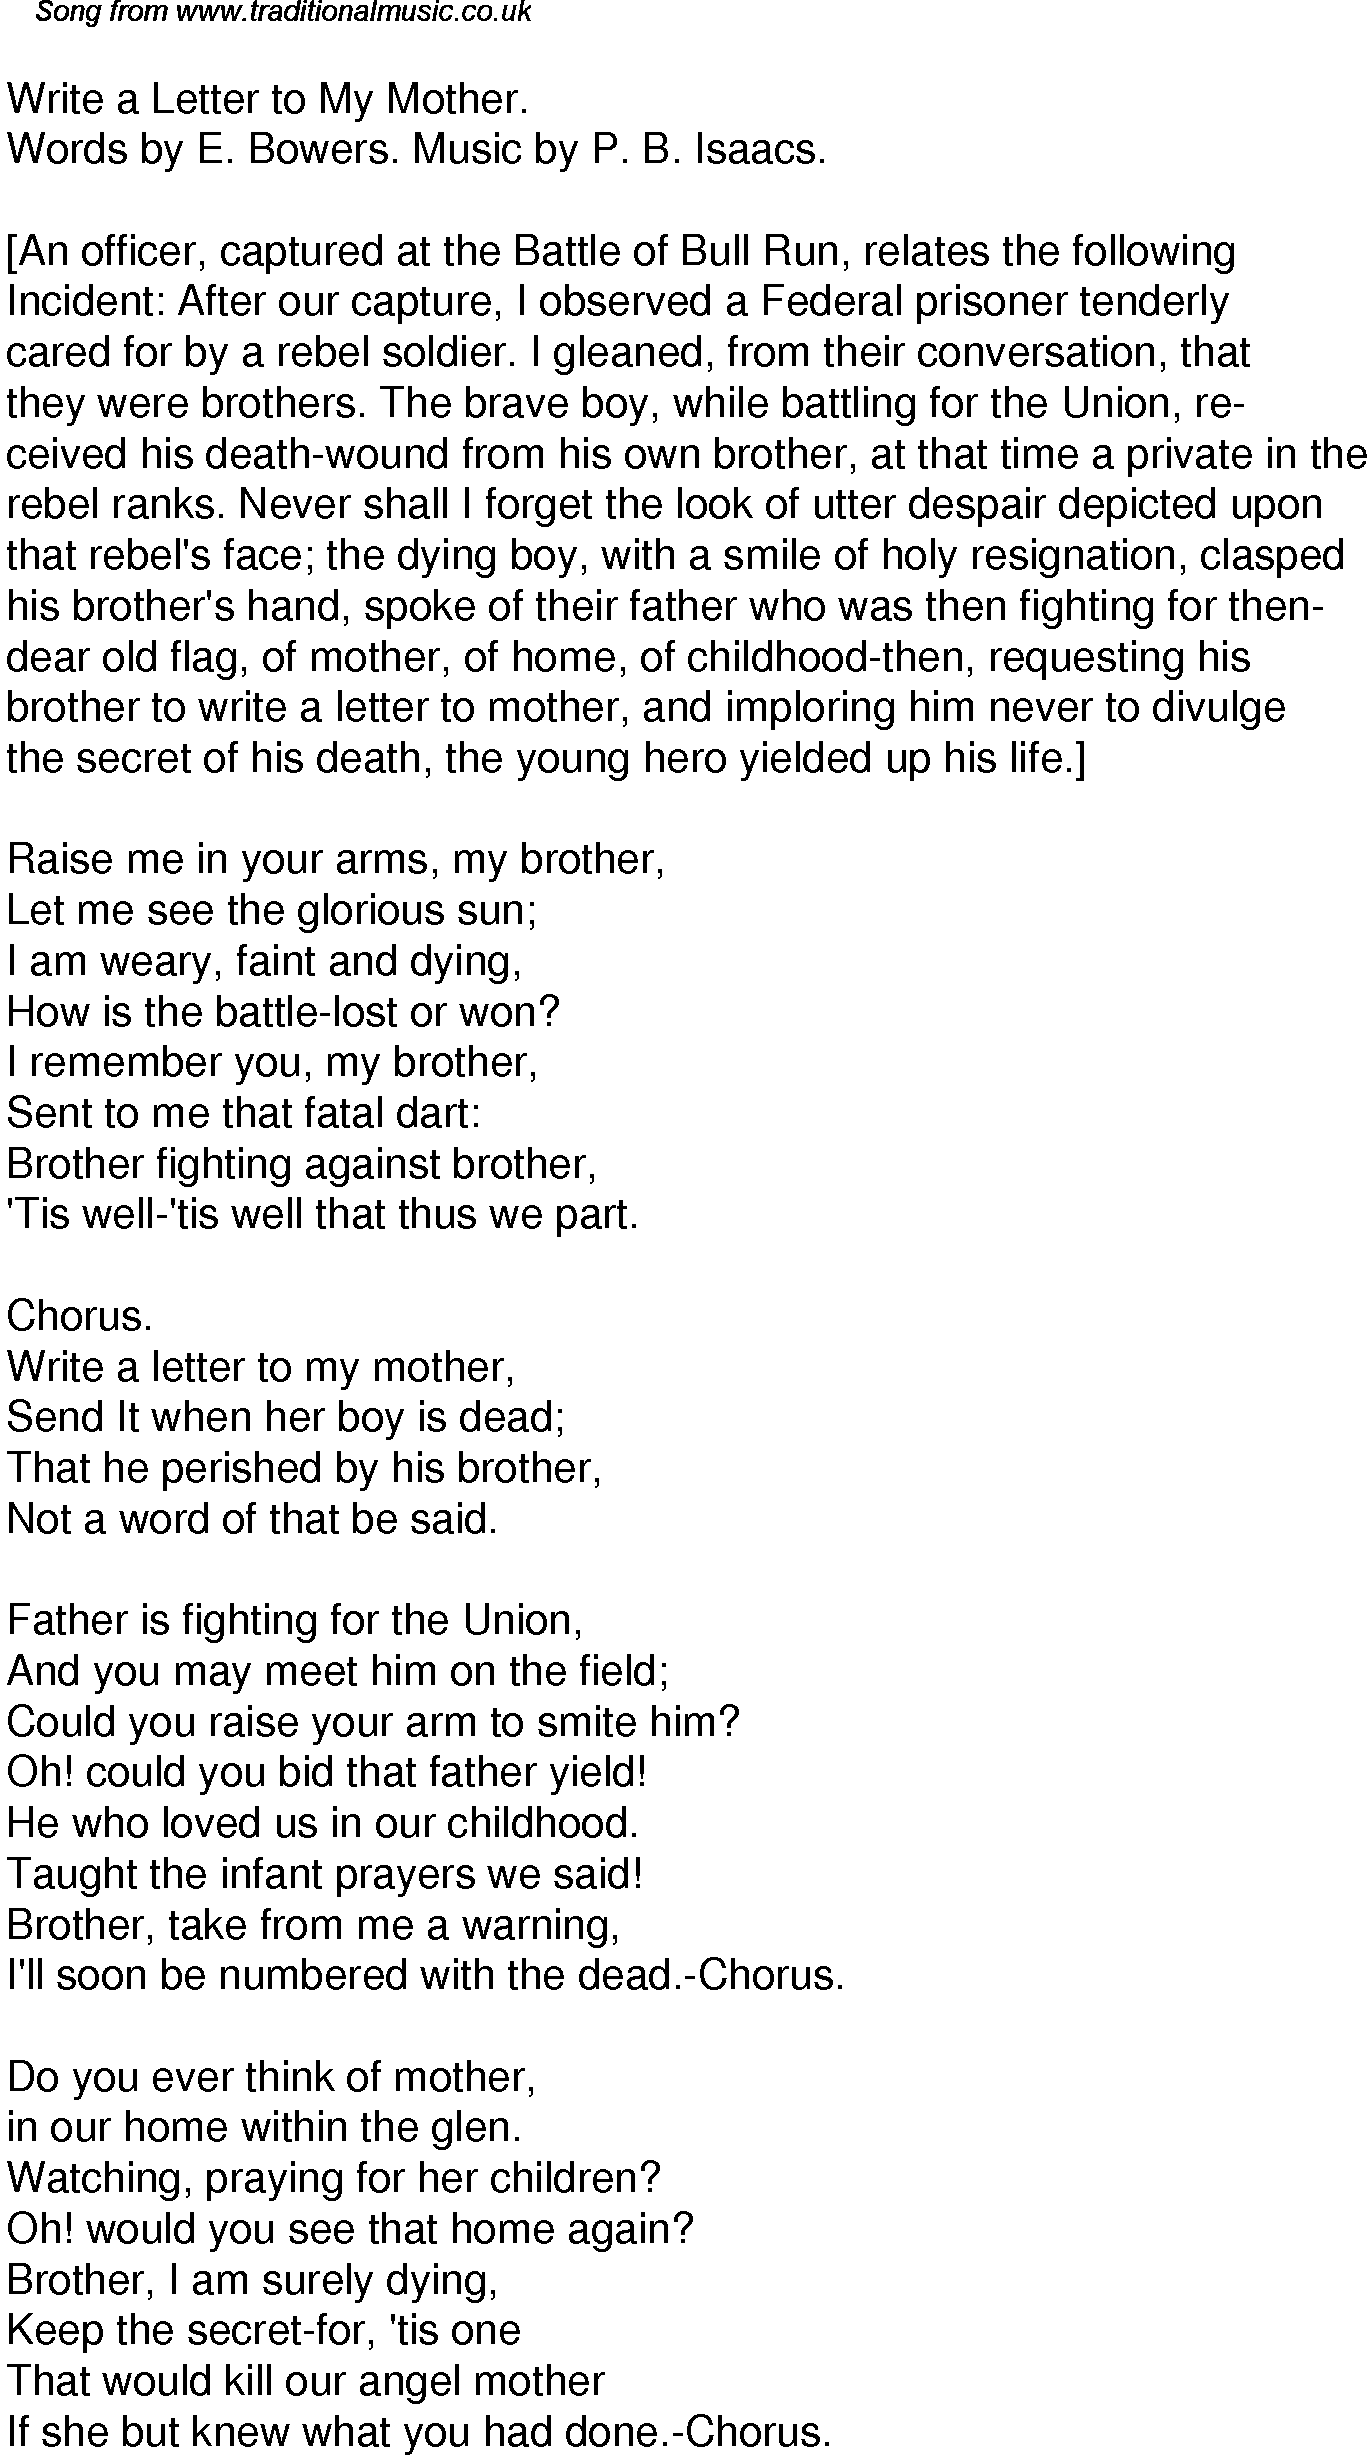 American Old Time Song Lyrics: 59 Write A Letter To My Mother